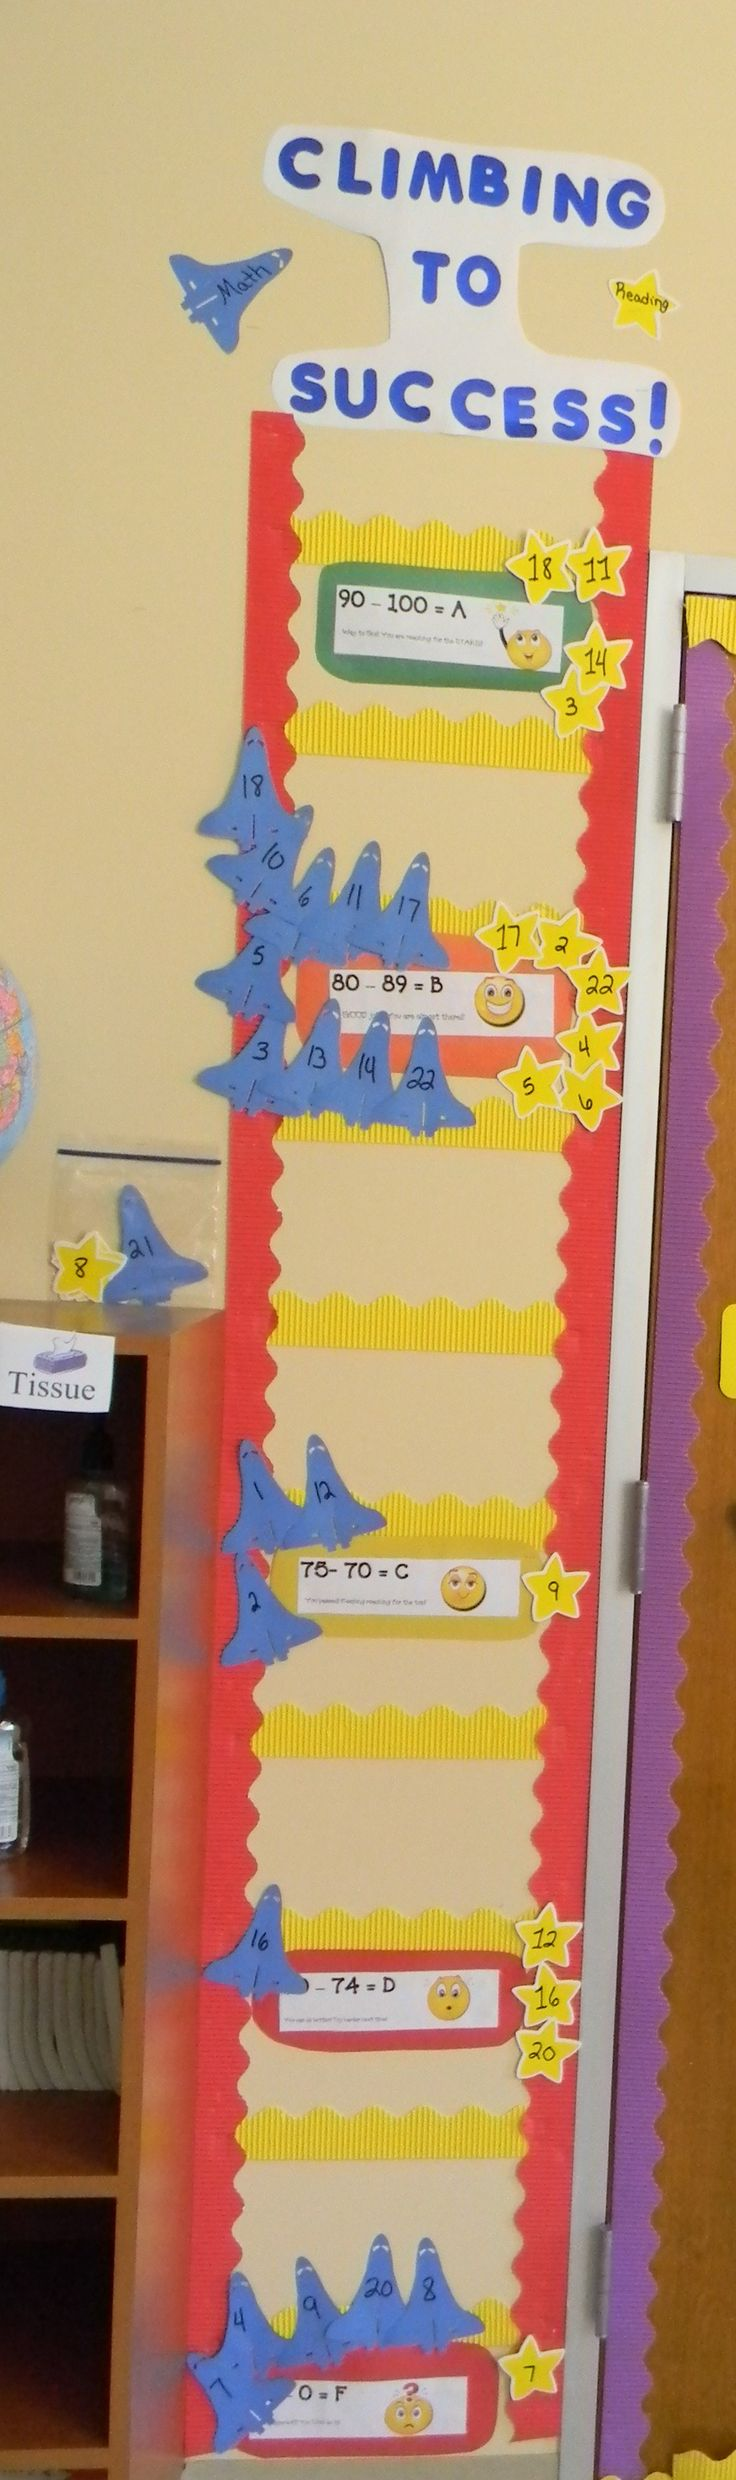 Climbing to Success Ladder displayed in my classroom. I use it to post student's test grades in Math and Reading as a means for motivation to get to the top. Students are assigned a number so no one knows what their grade is.